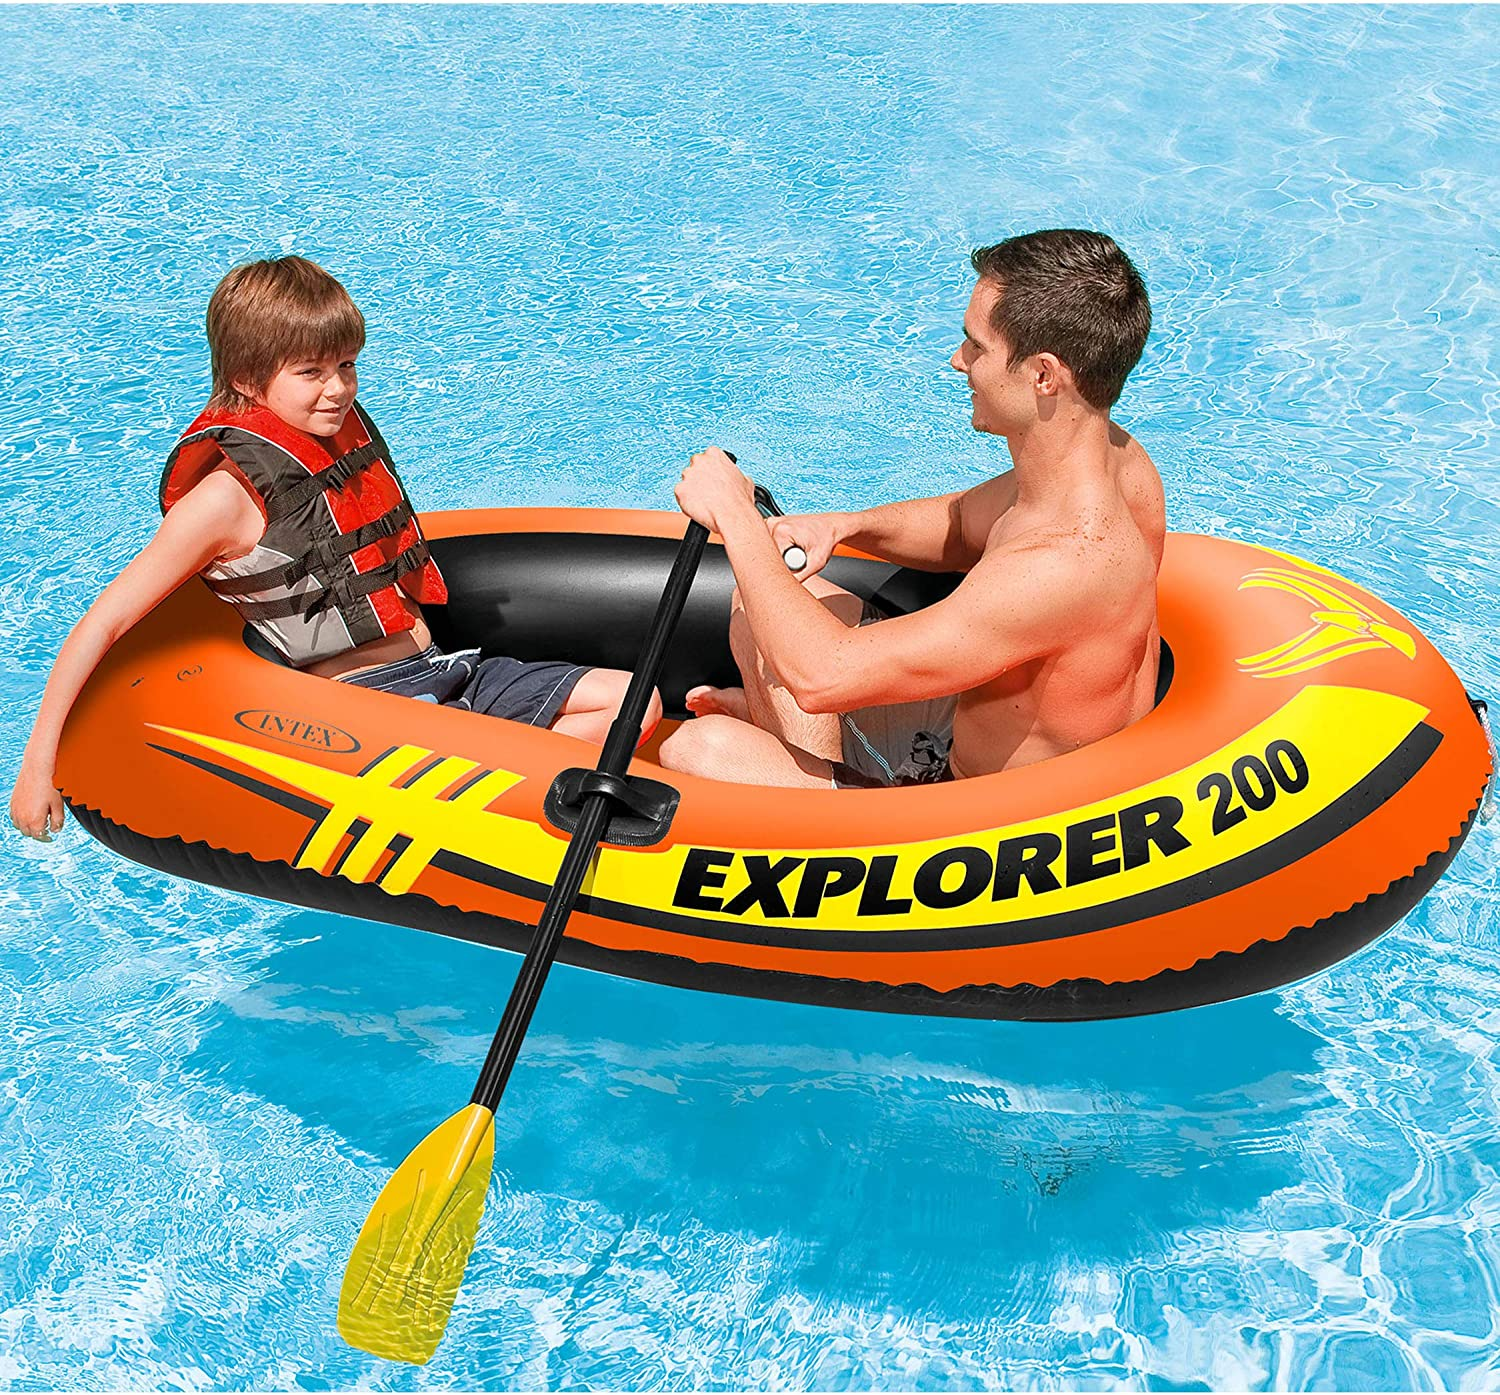 Amazon.com: Intex Explorer 200 - Barco hinchable para 2 ...